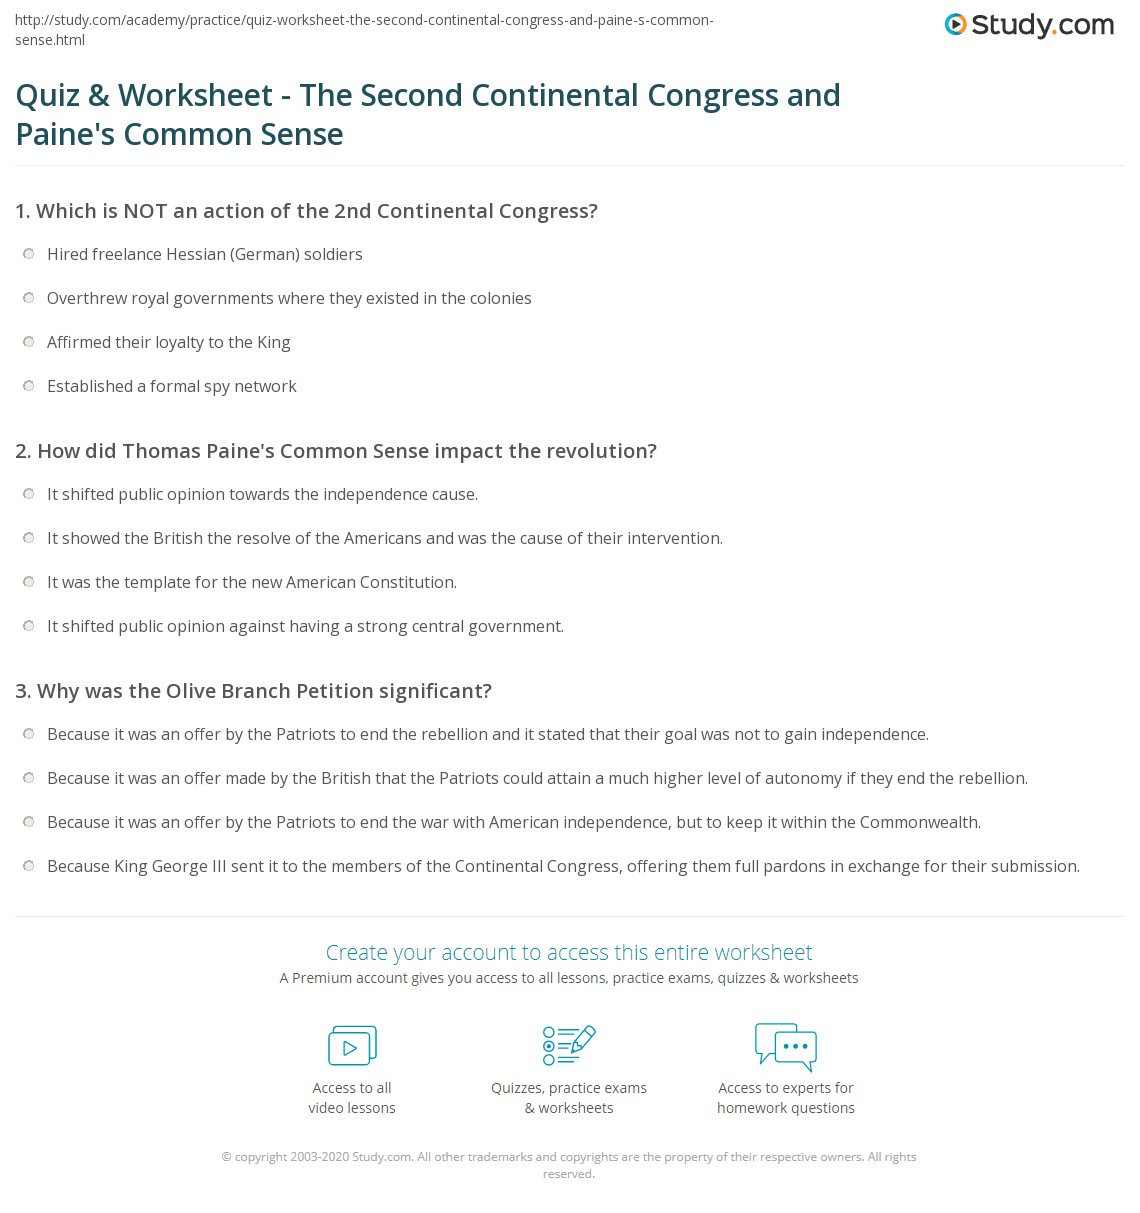 Quiz & Worksheet - The Second Continental Congress and